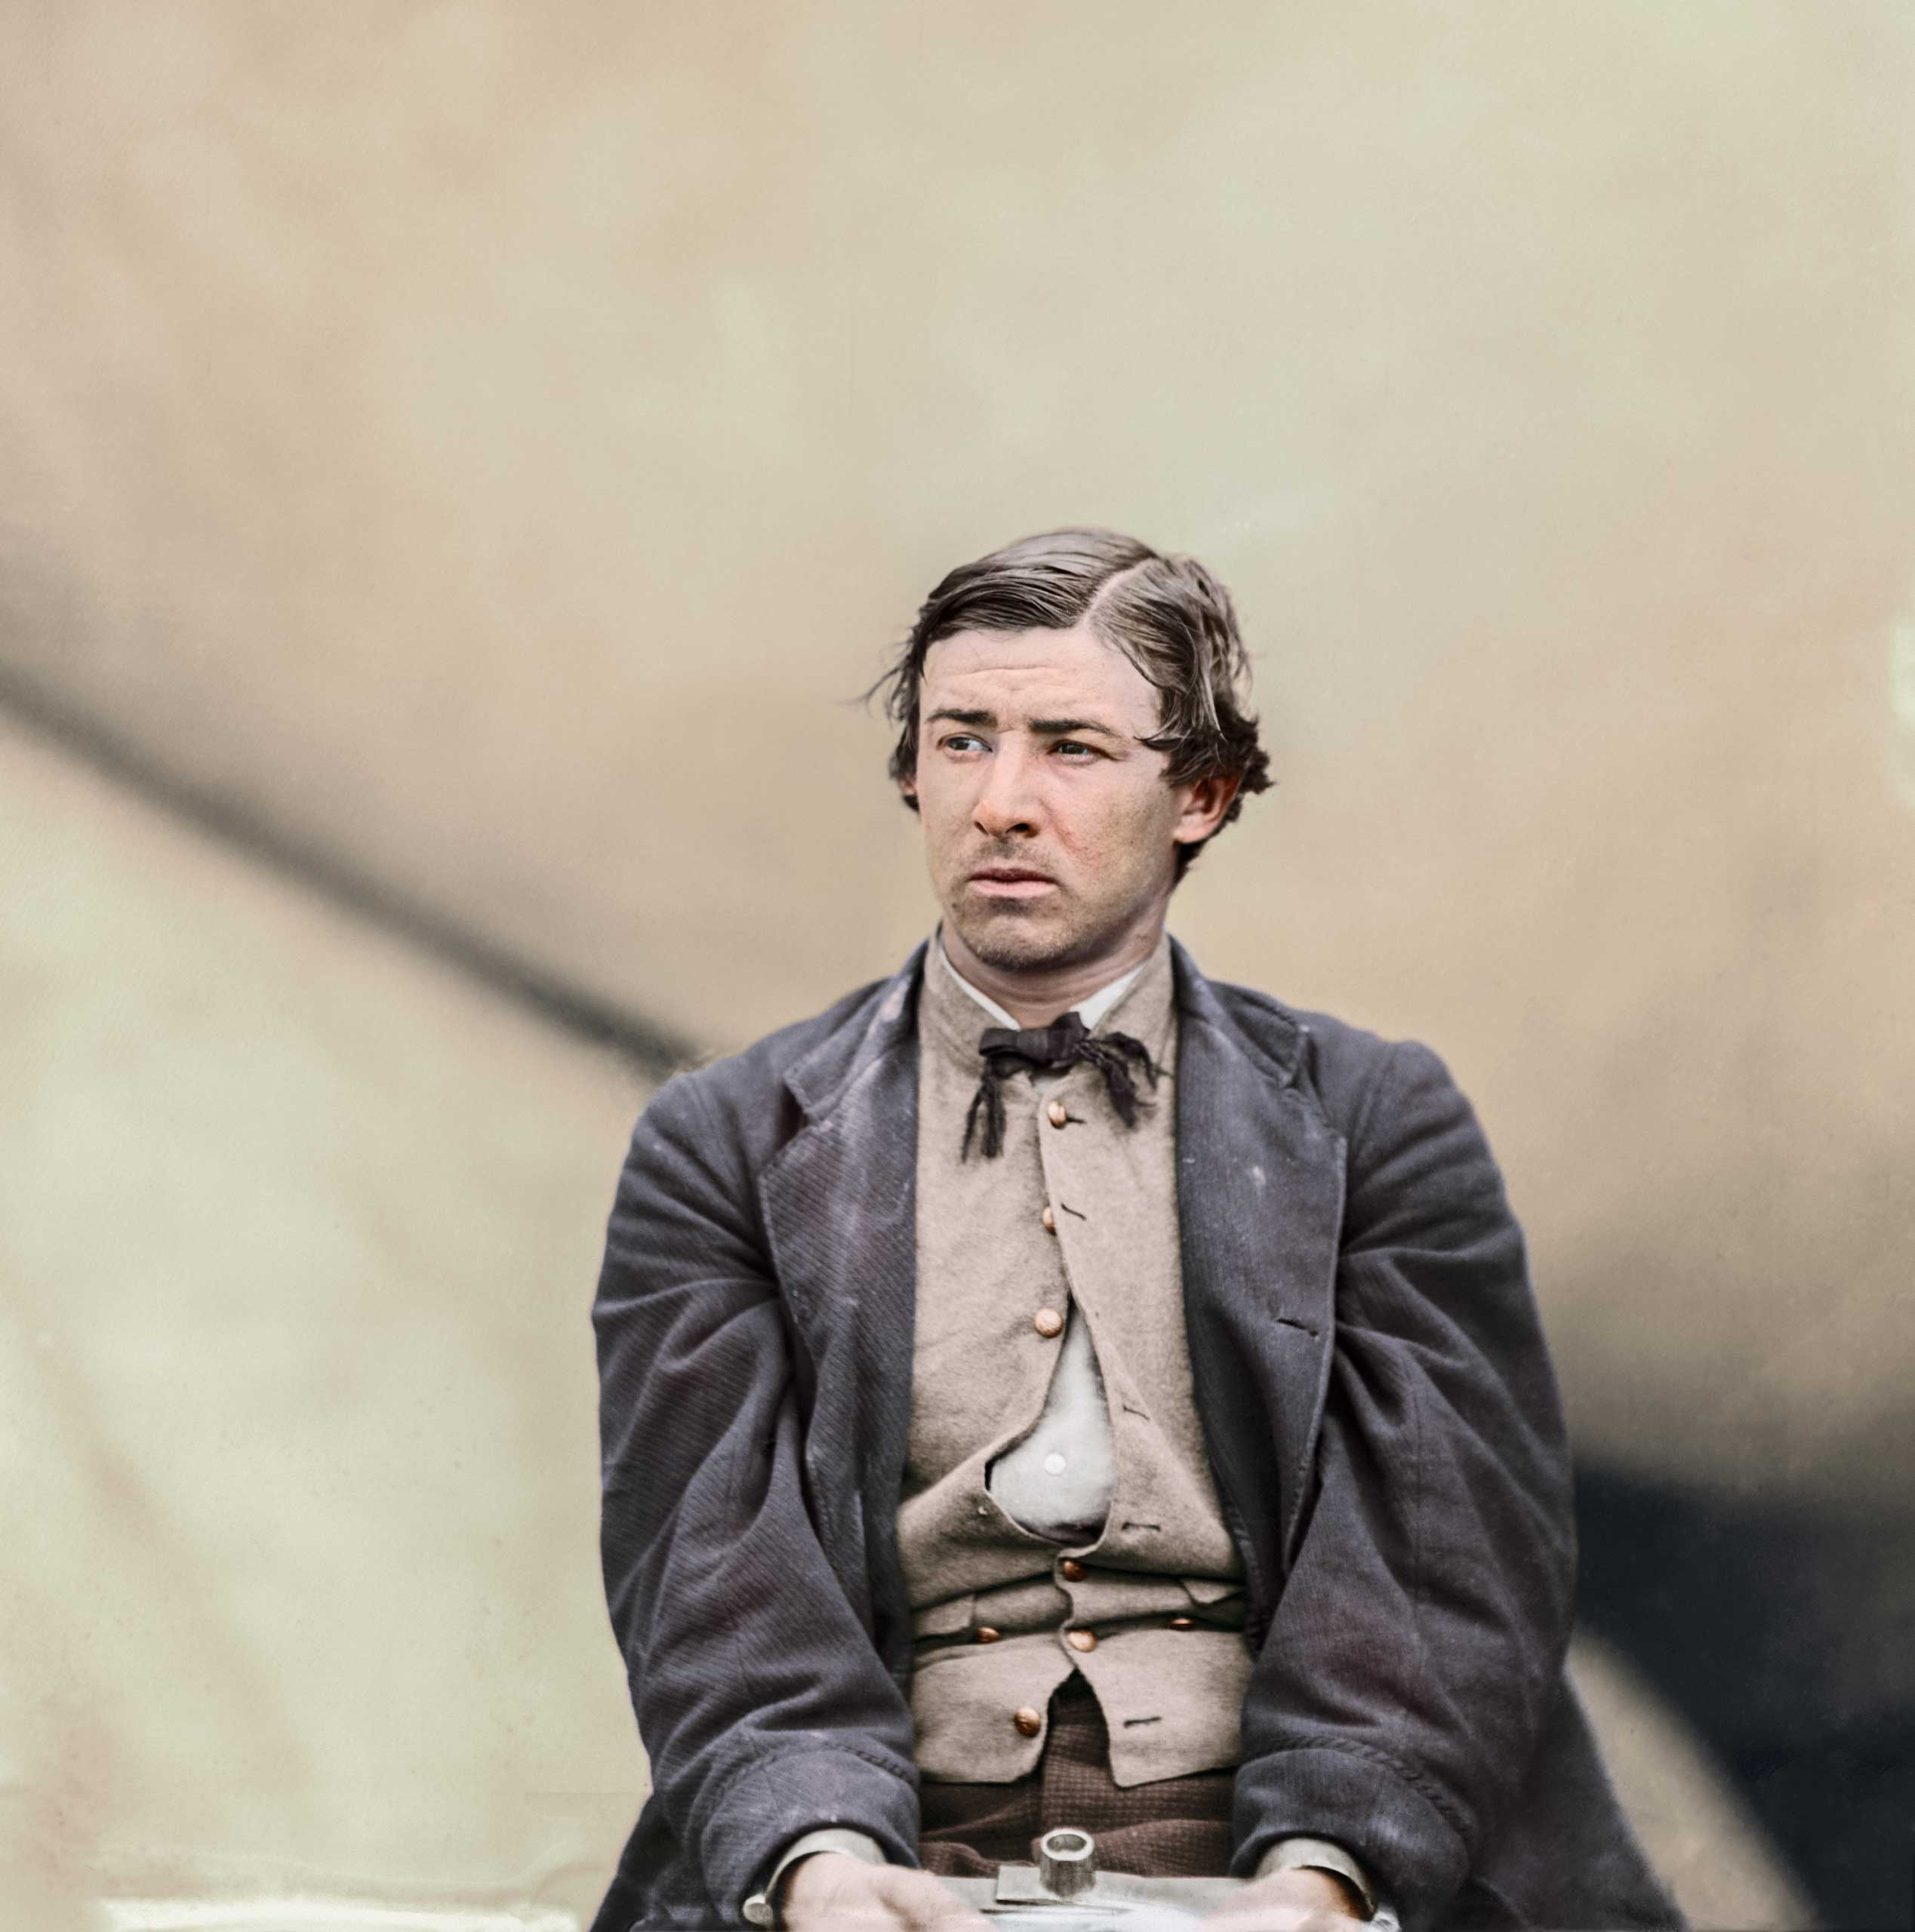 David E. Herold, a conspirator in the assassination of President Lincoln, in the Washington Navy Yard, April-July 1865.